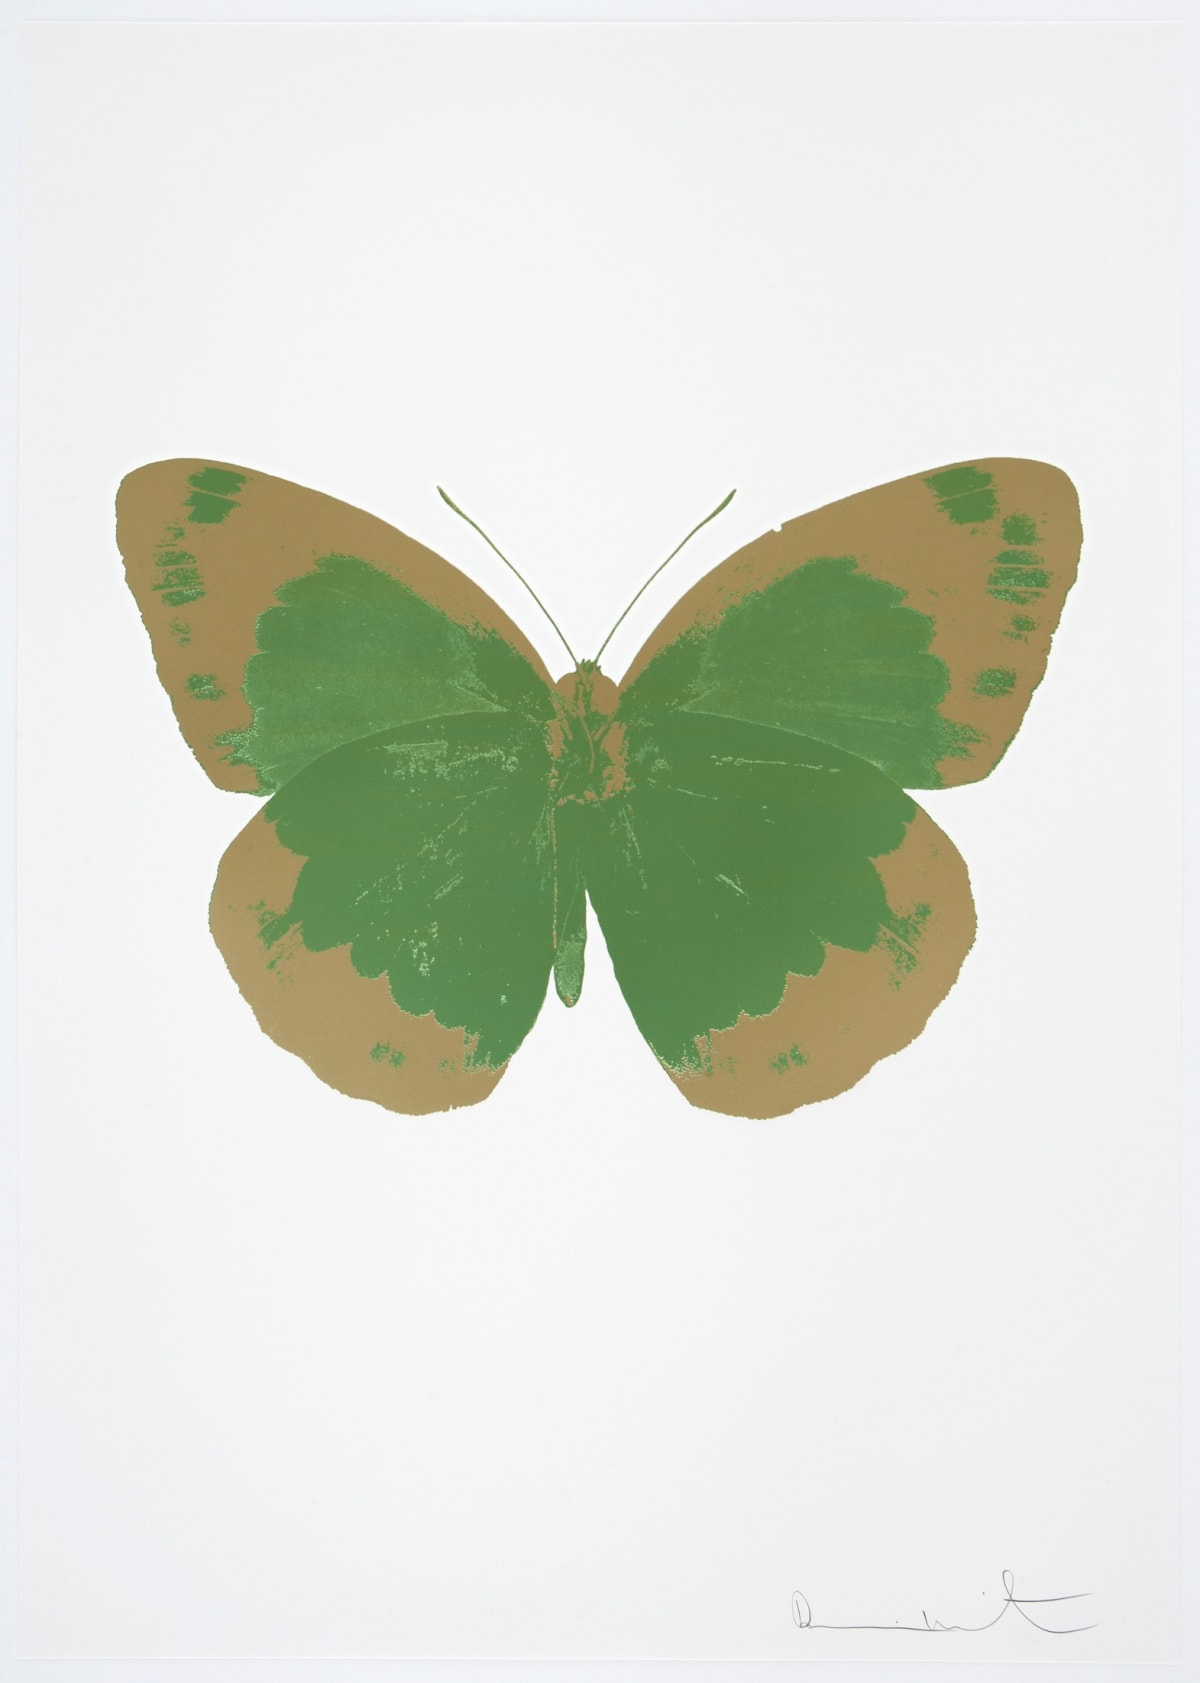 Damien Hirst The Souls II - Leaf Green/Cool Gold/Blind Impression, 2010 2 colour foil block on 300gsm Arches 88 archival paper. Signed and numbered. Published by Paul Stolper and Other Criteria 72 x 51cm OC7854 / 658-37 Edition of 15